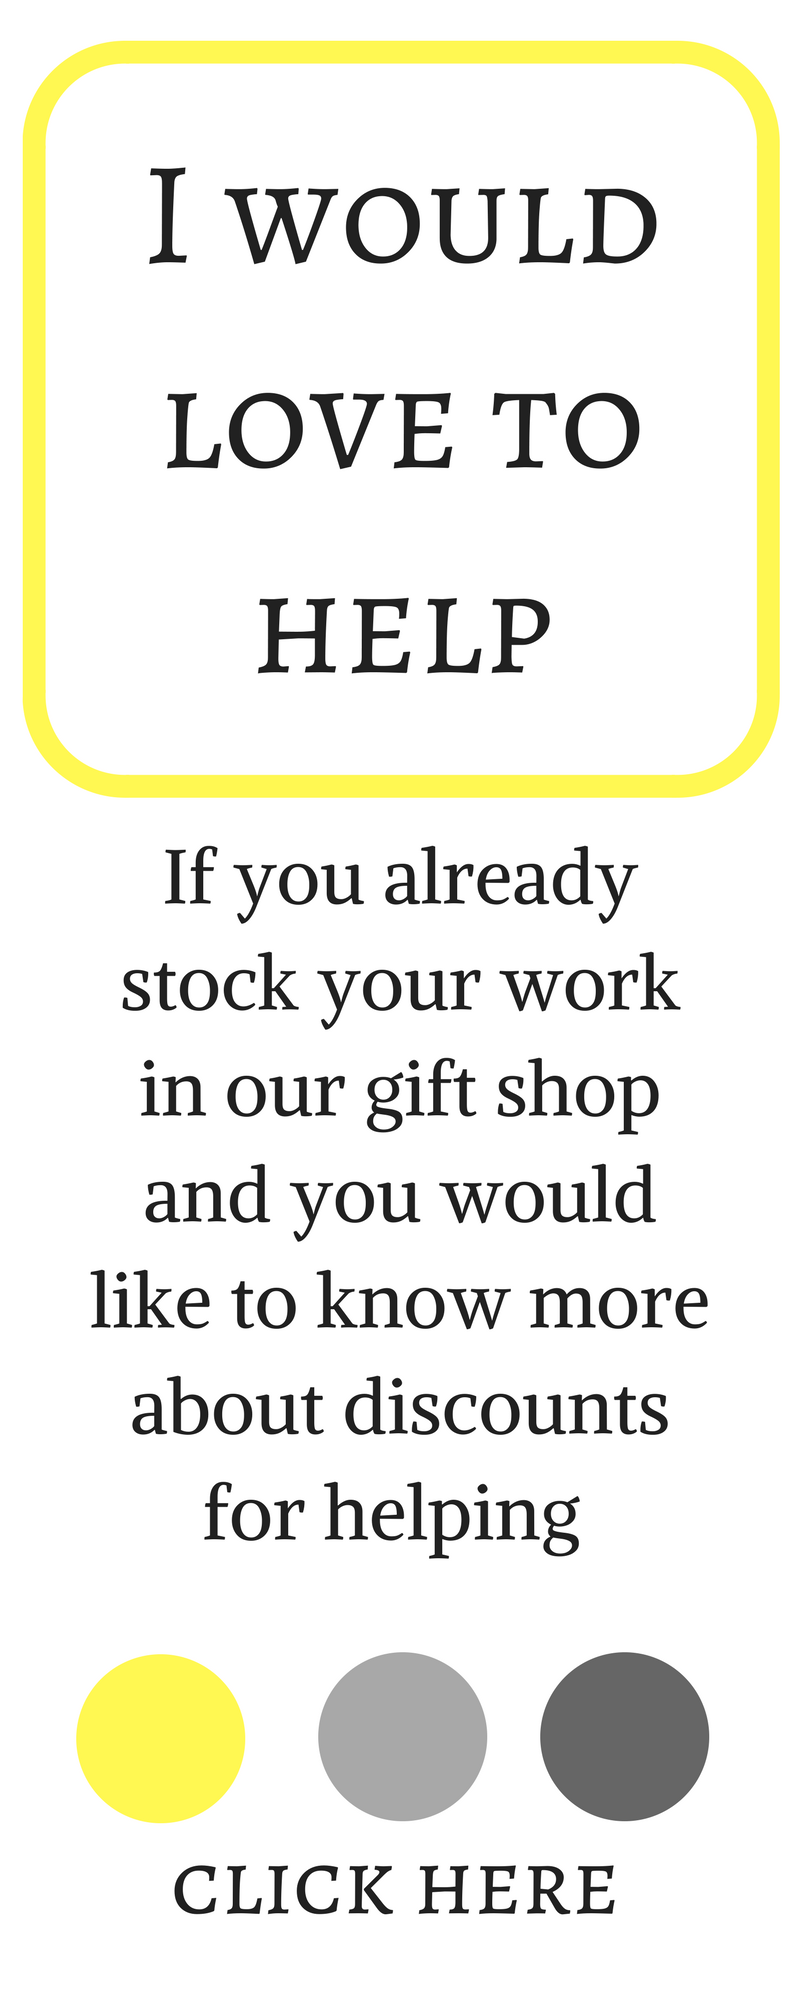 Help in the gift shop